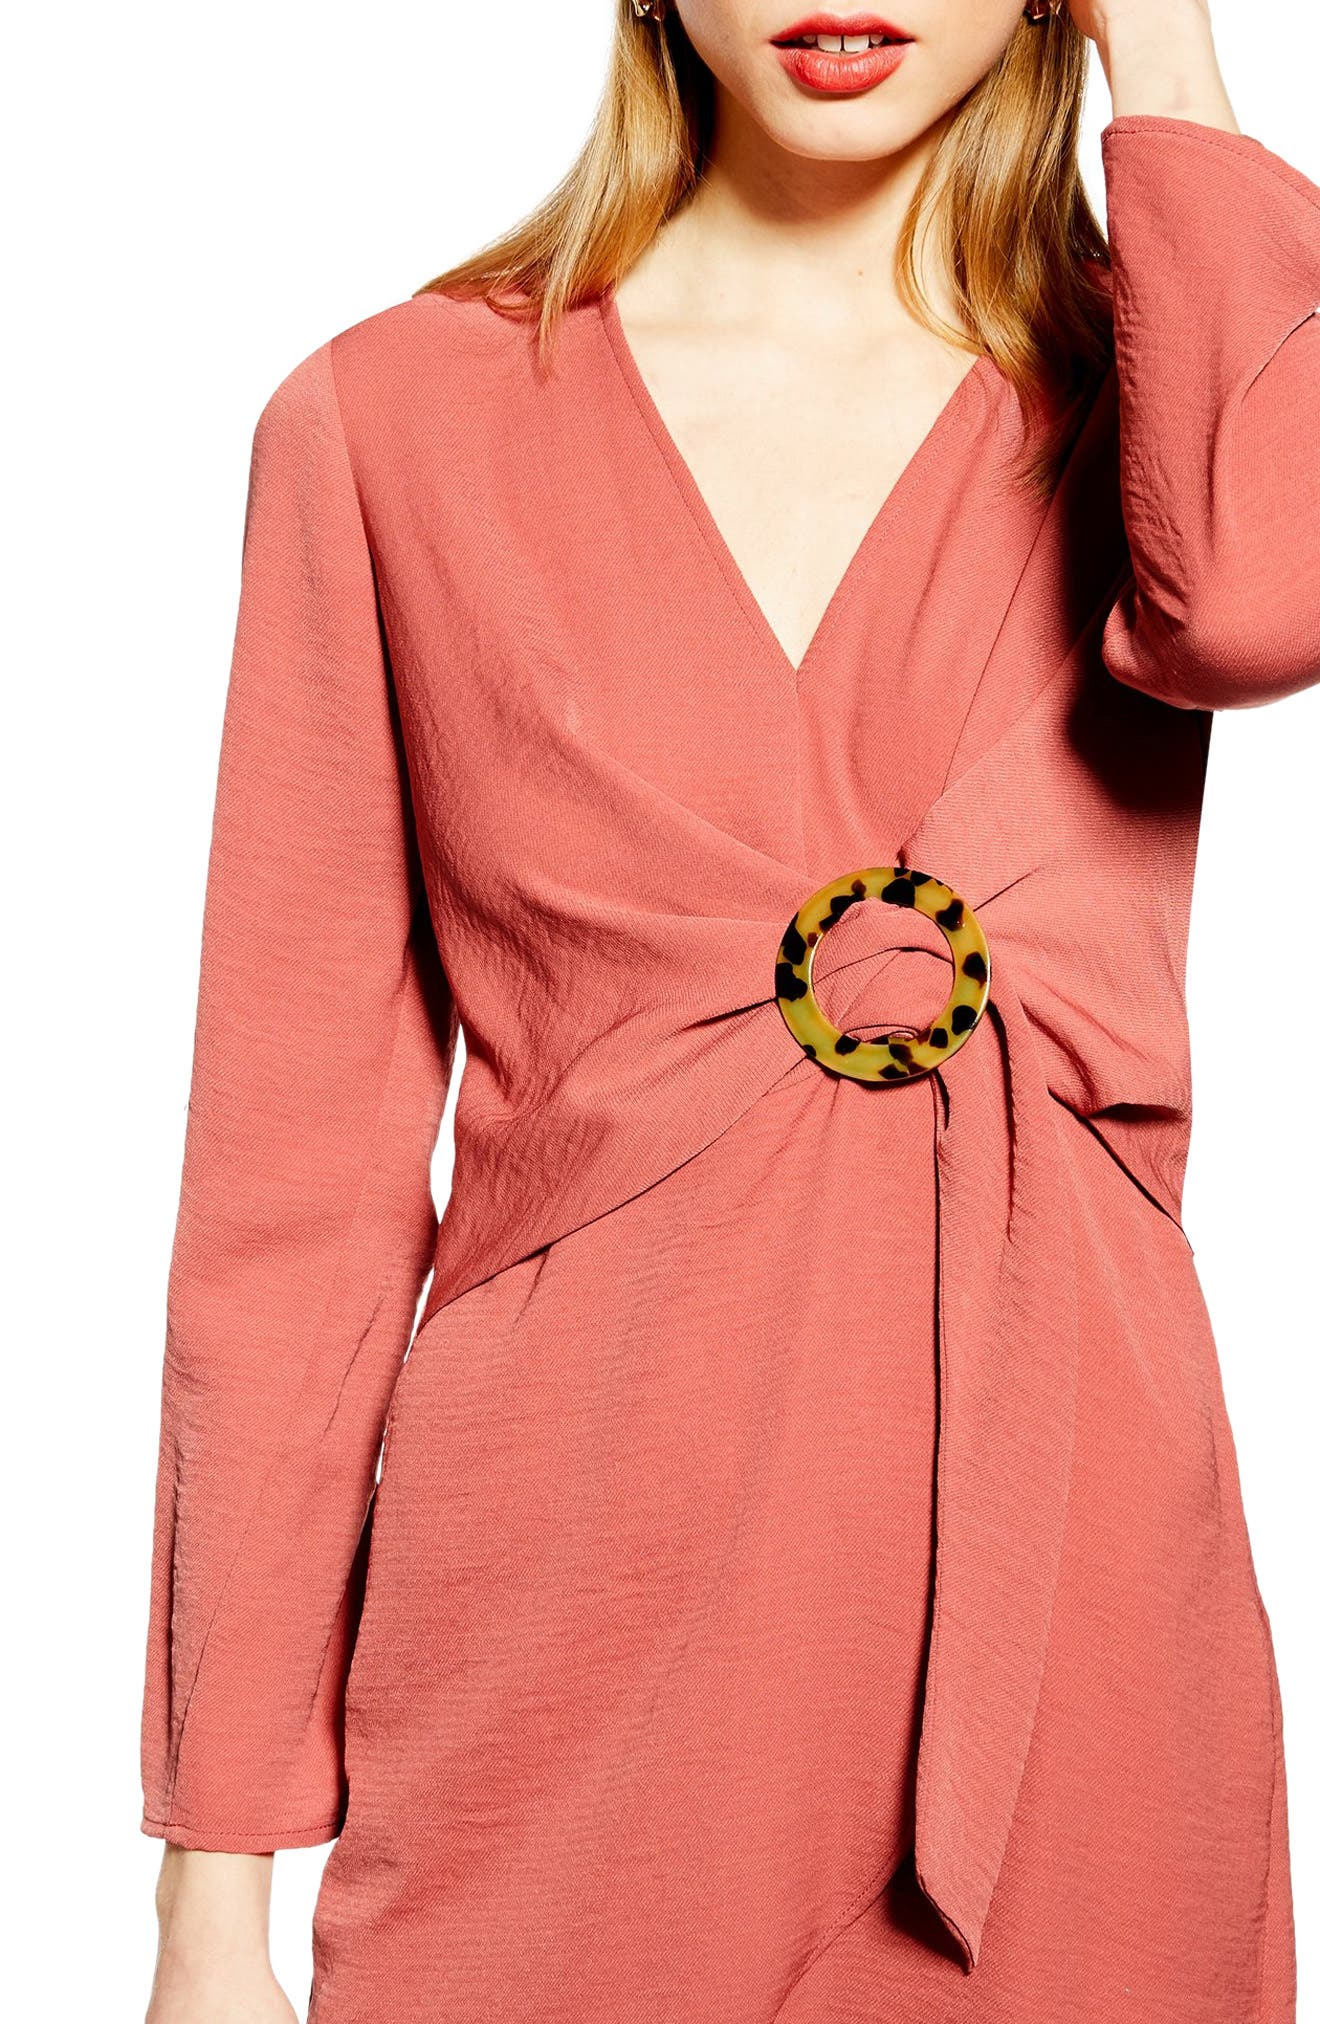 TOPSHOP, Tortoise Ring Minidress, Alternate thumbnail 3, color, DUSTY PINK